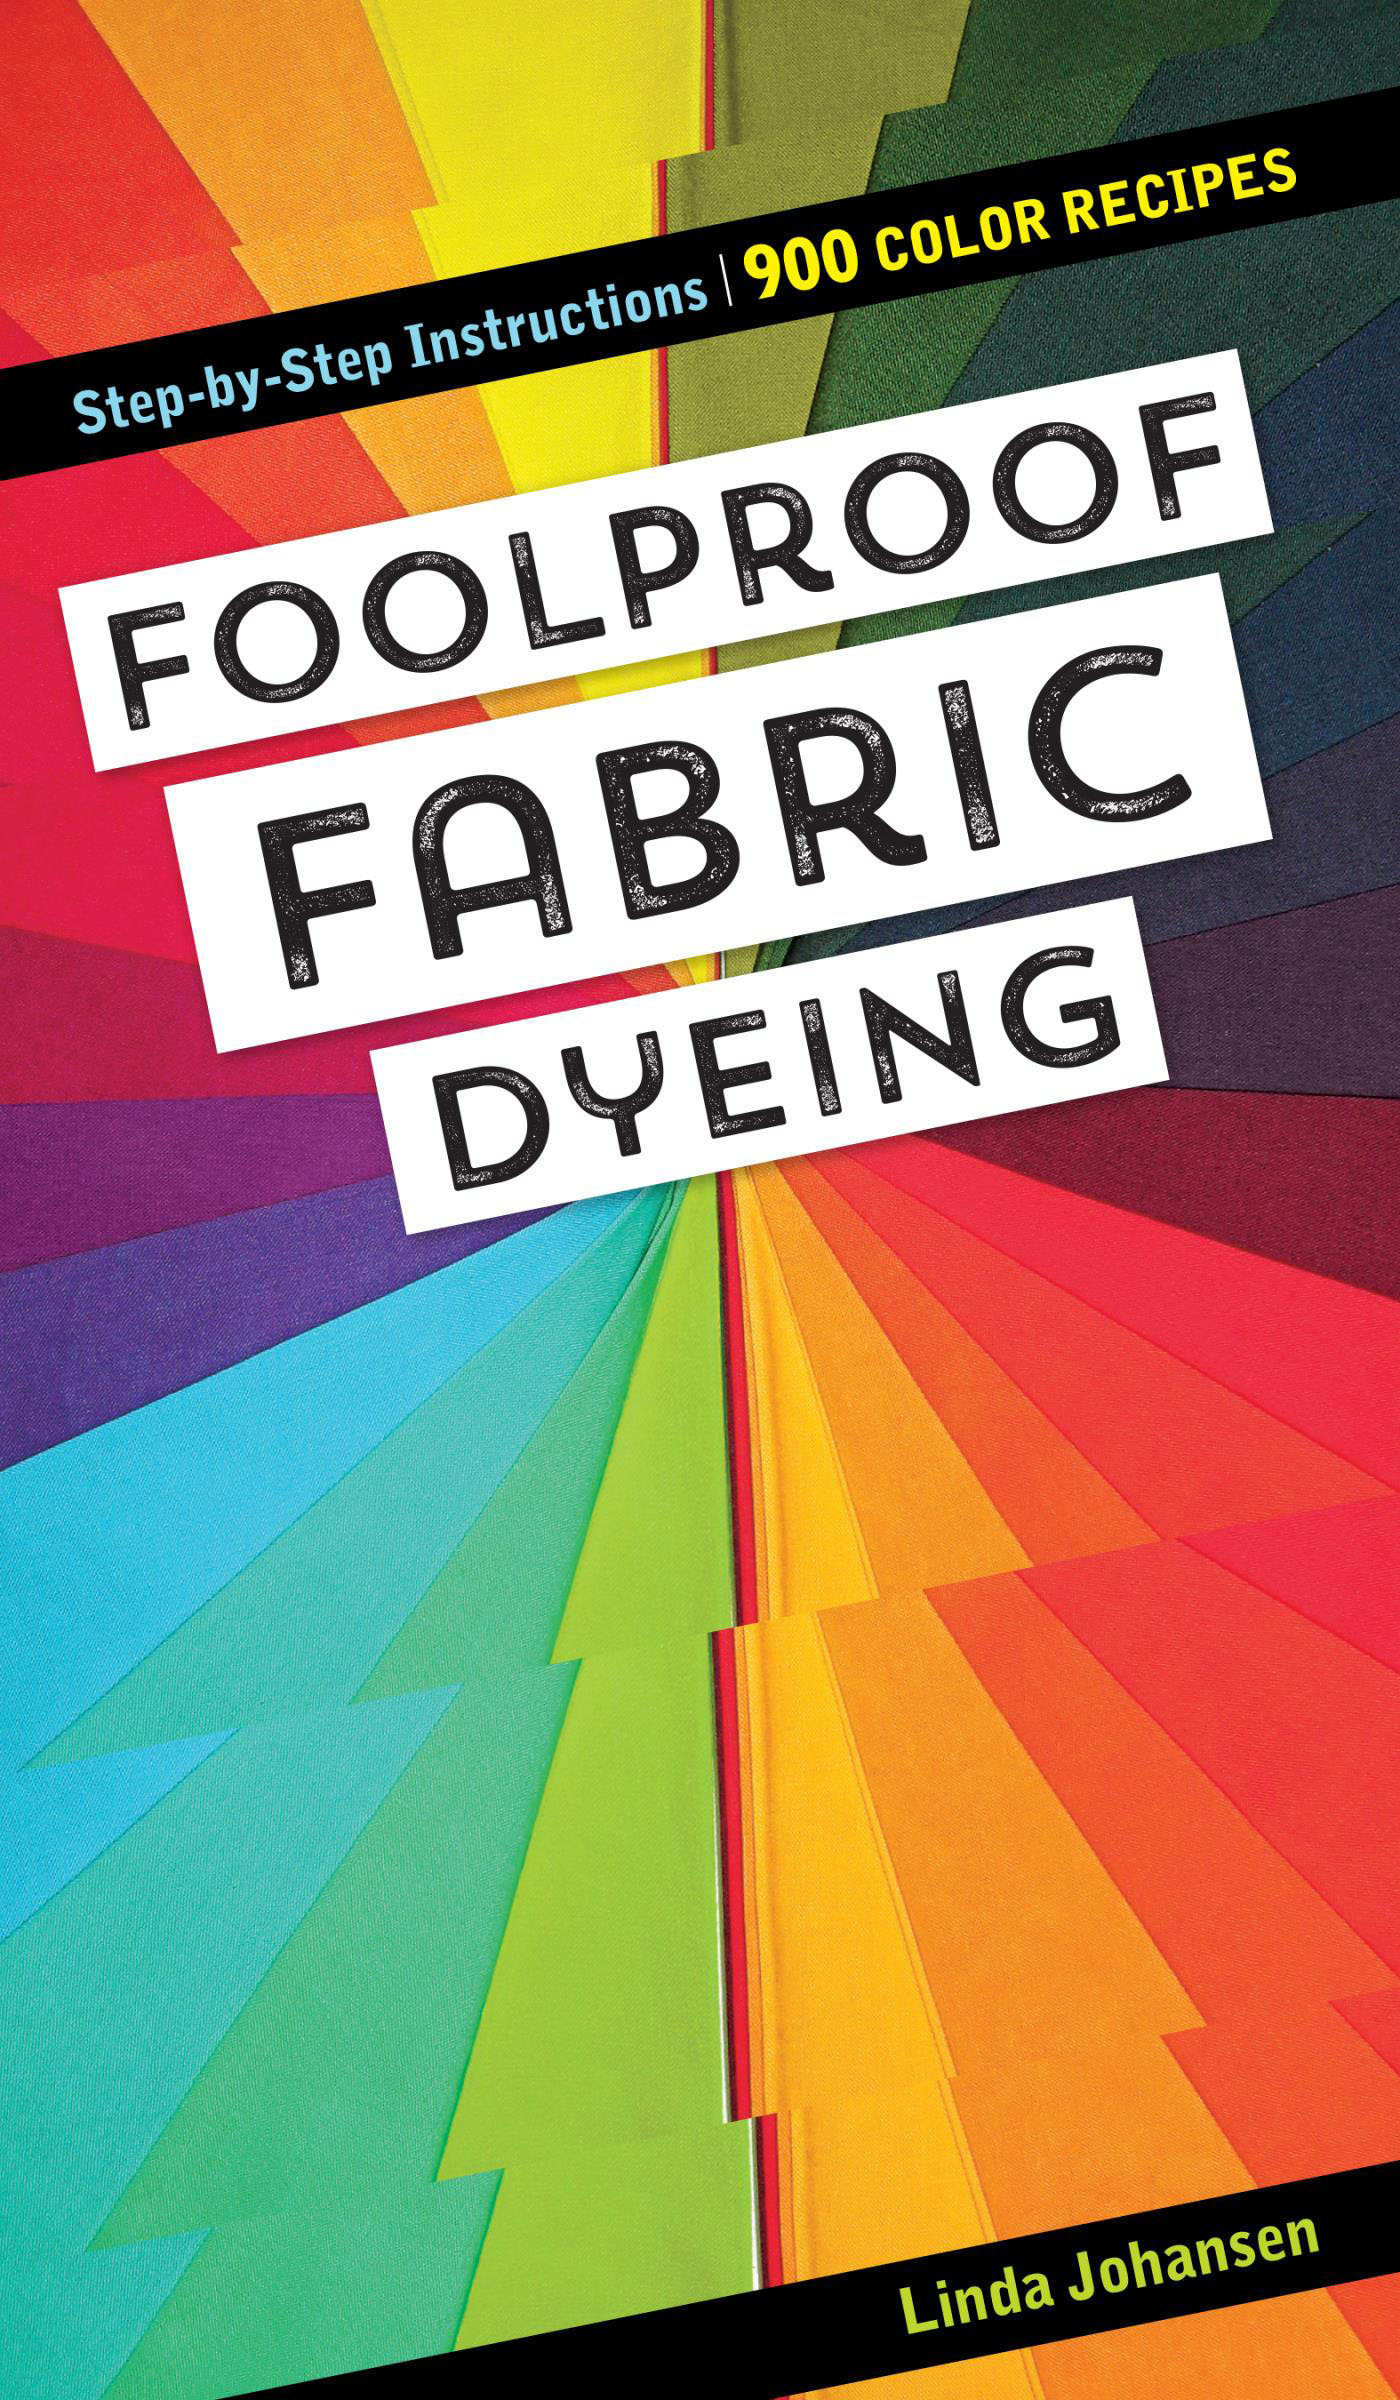 Foolproof Fabric Dyeing 900 Color Recipes, Step-by-Step Instructions